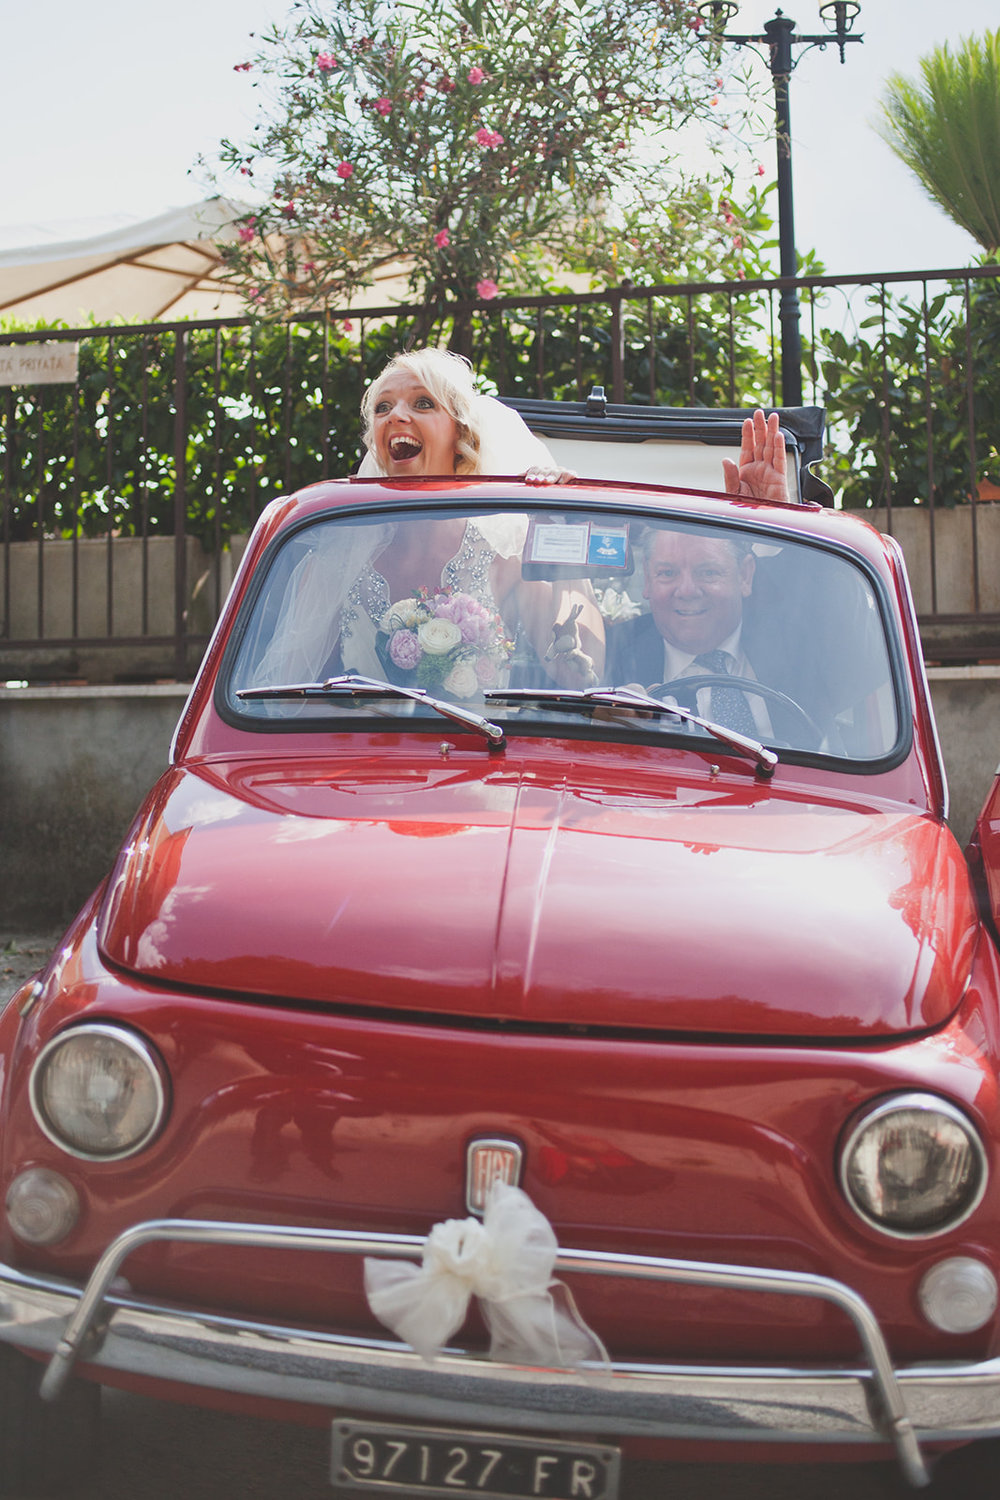 destination wedding photography in italy, rome. stop motion wedding films